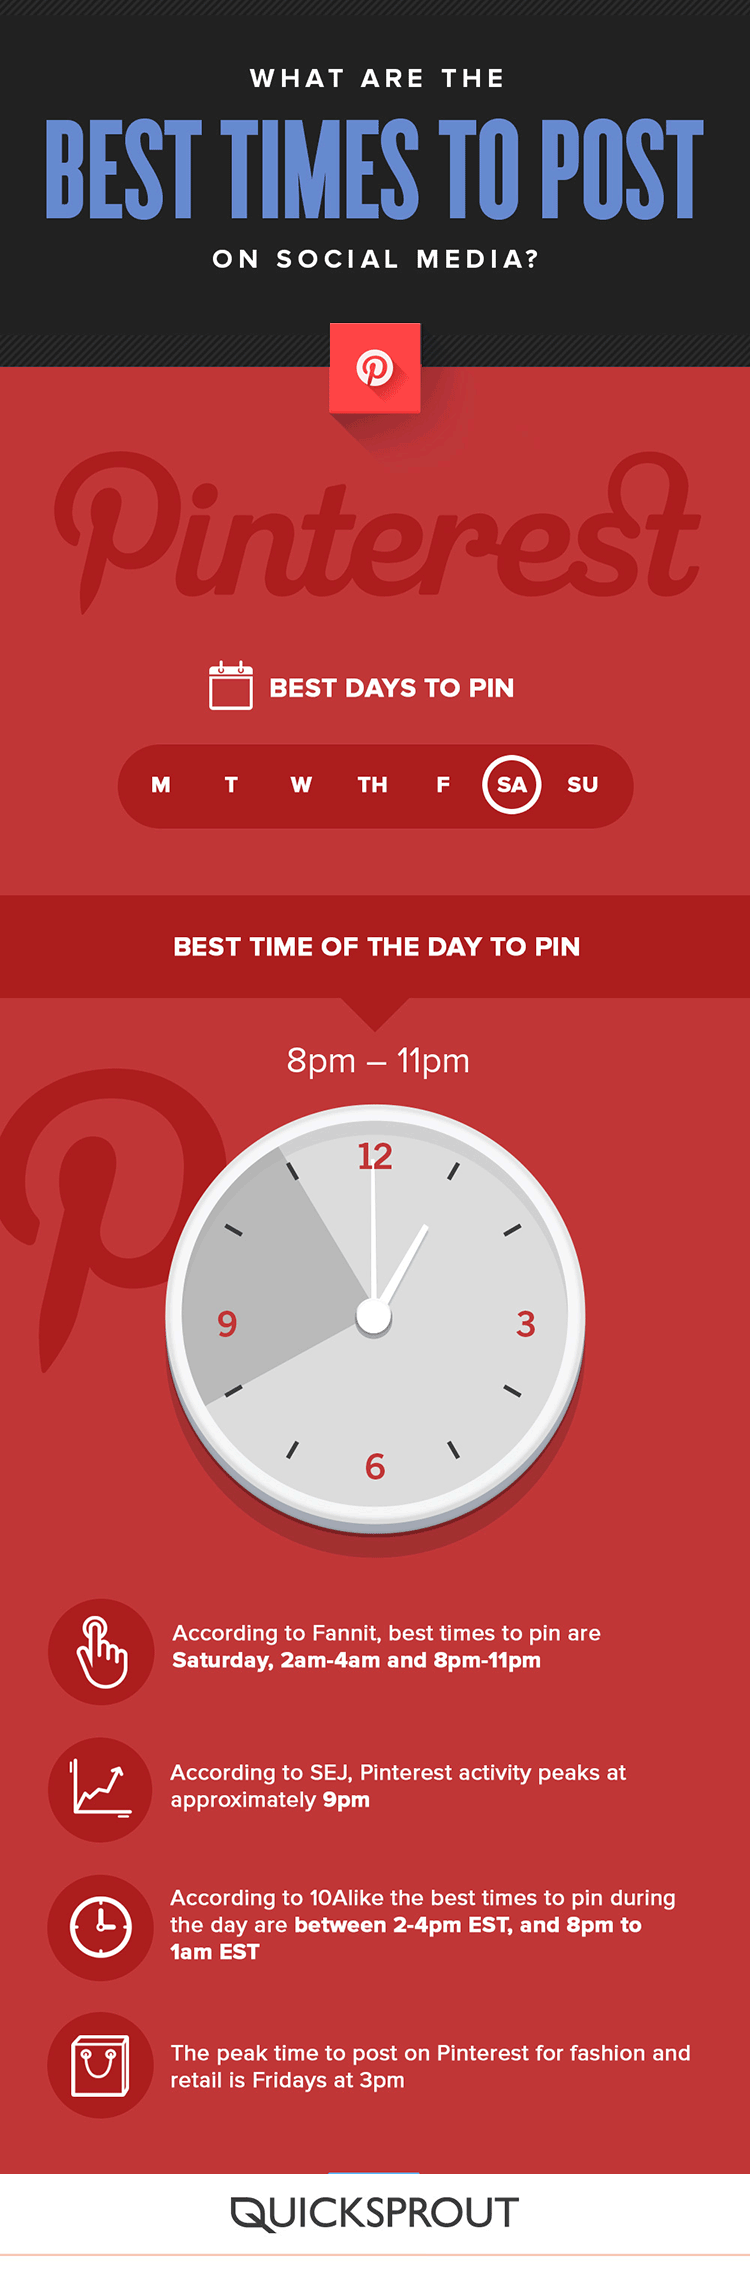 Wondering the best time to pin on Pinterest? It's an important platform for website traffic, so you'll want to time your pins right. Check this infographic!